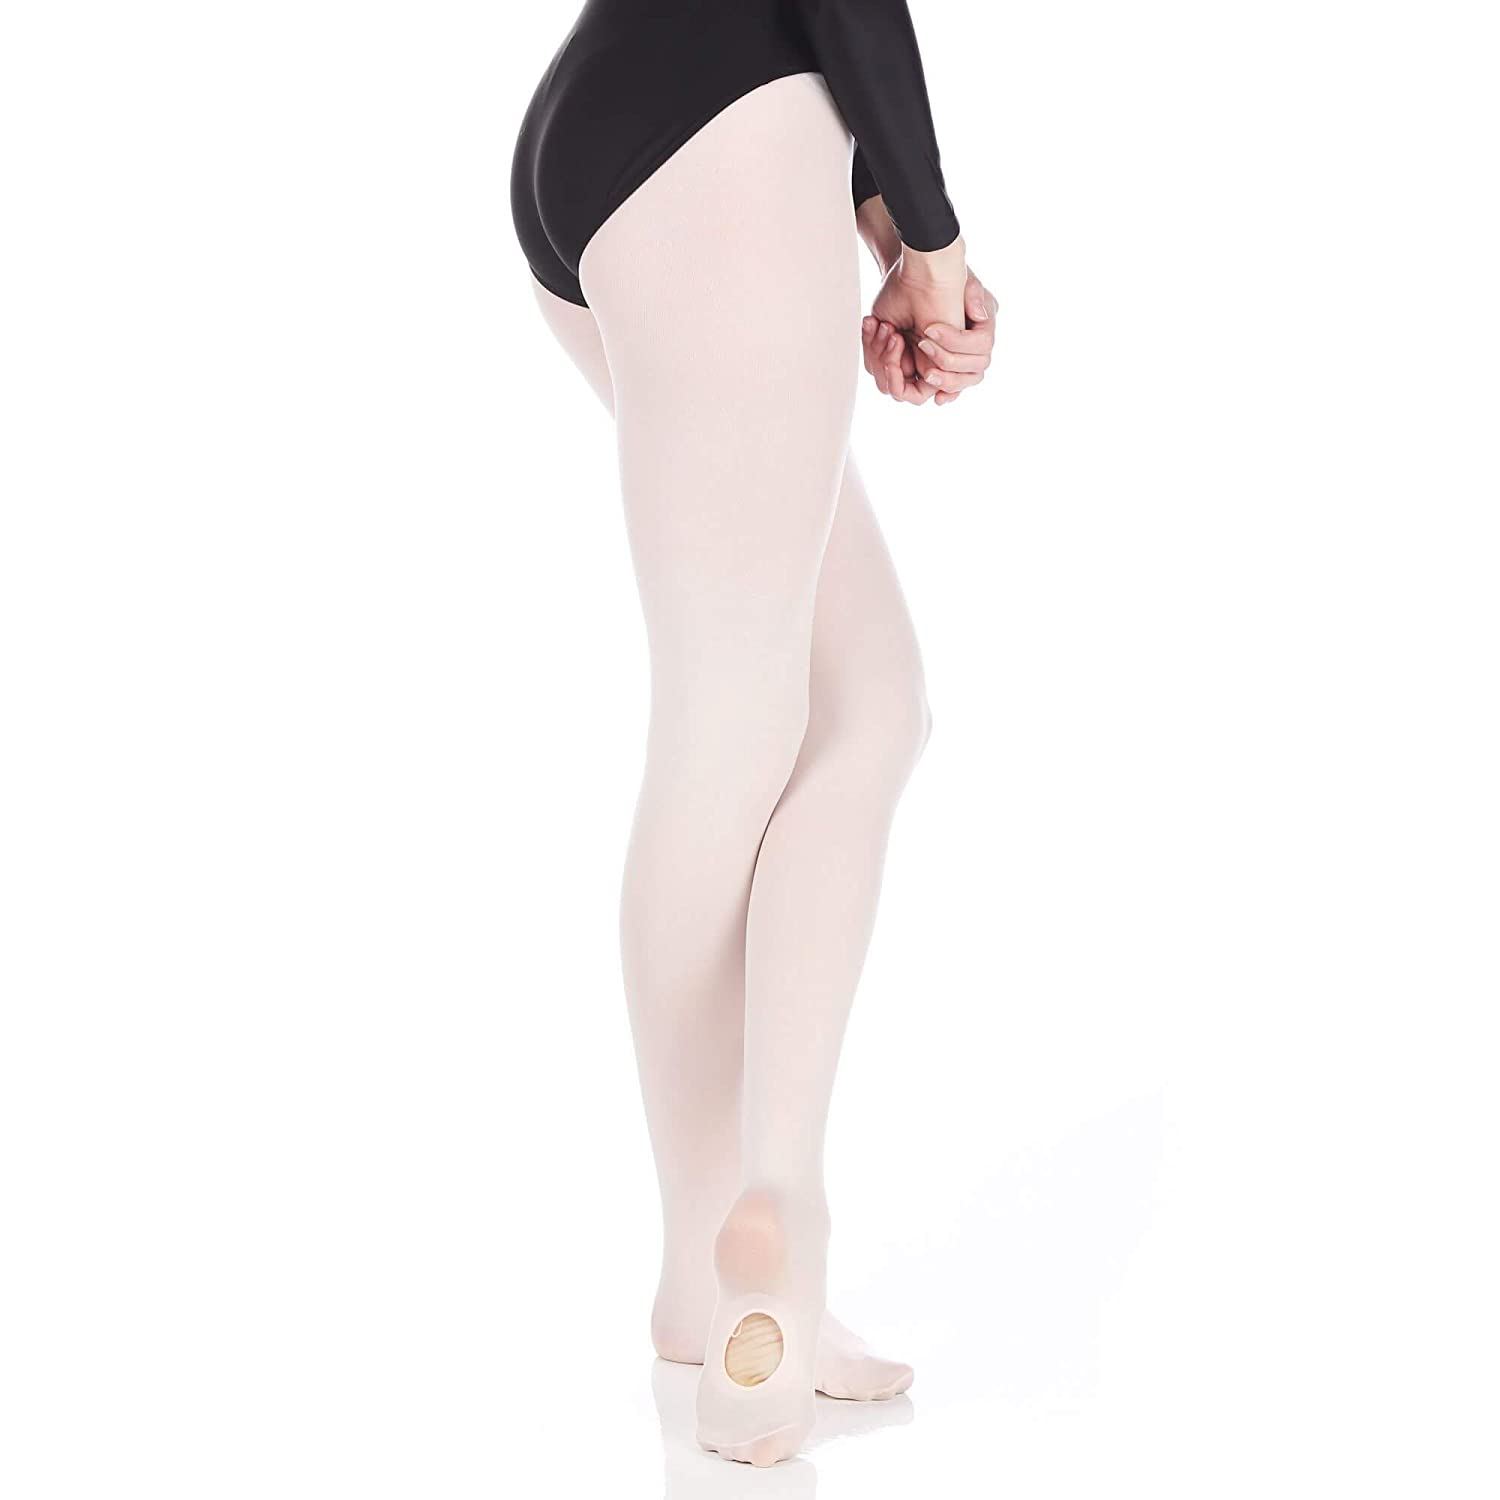 Danzcue Ultrasoft Stretch Convertible Tights